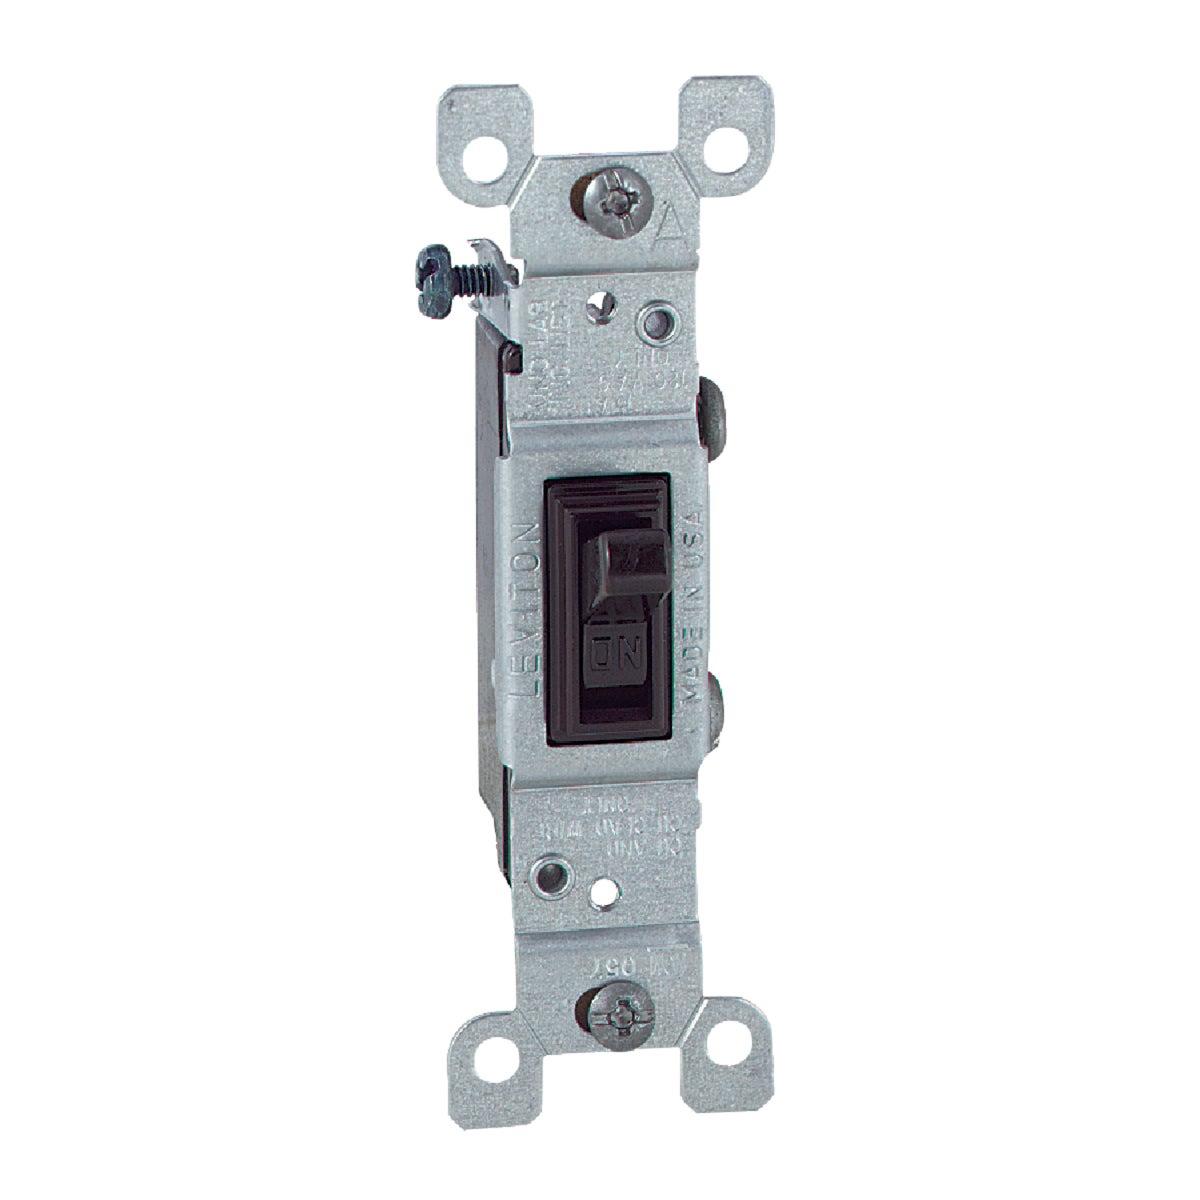 SGL POLE GROUNDED SWTICH - S00-01451-02S by Leviton Mfg Co